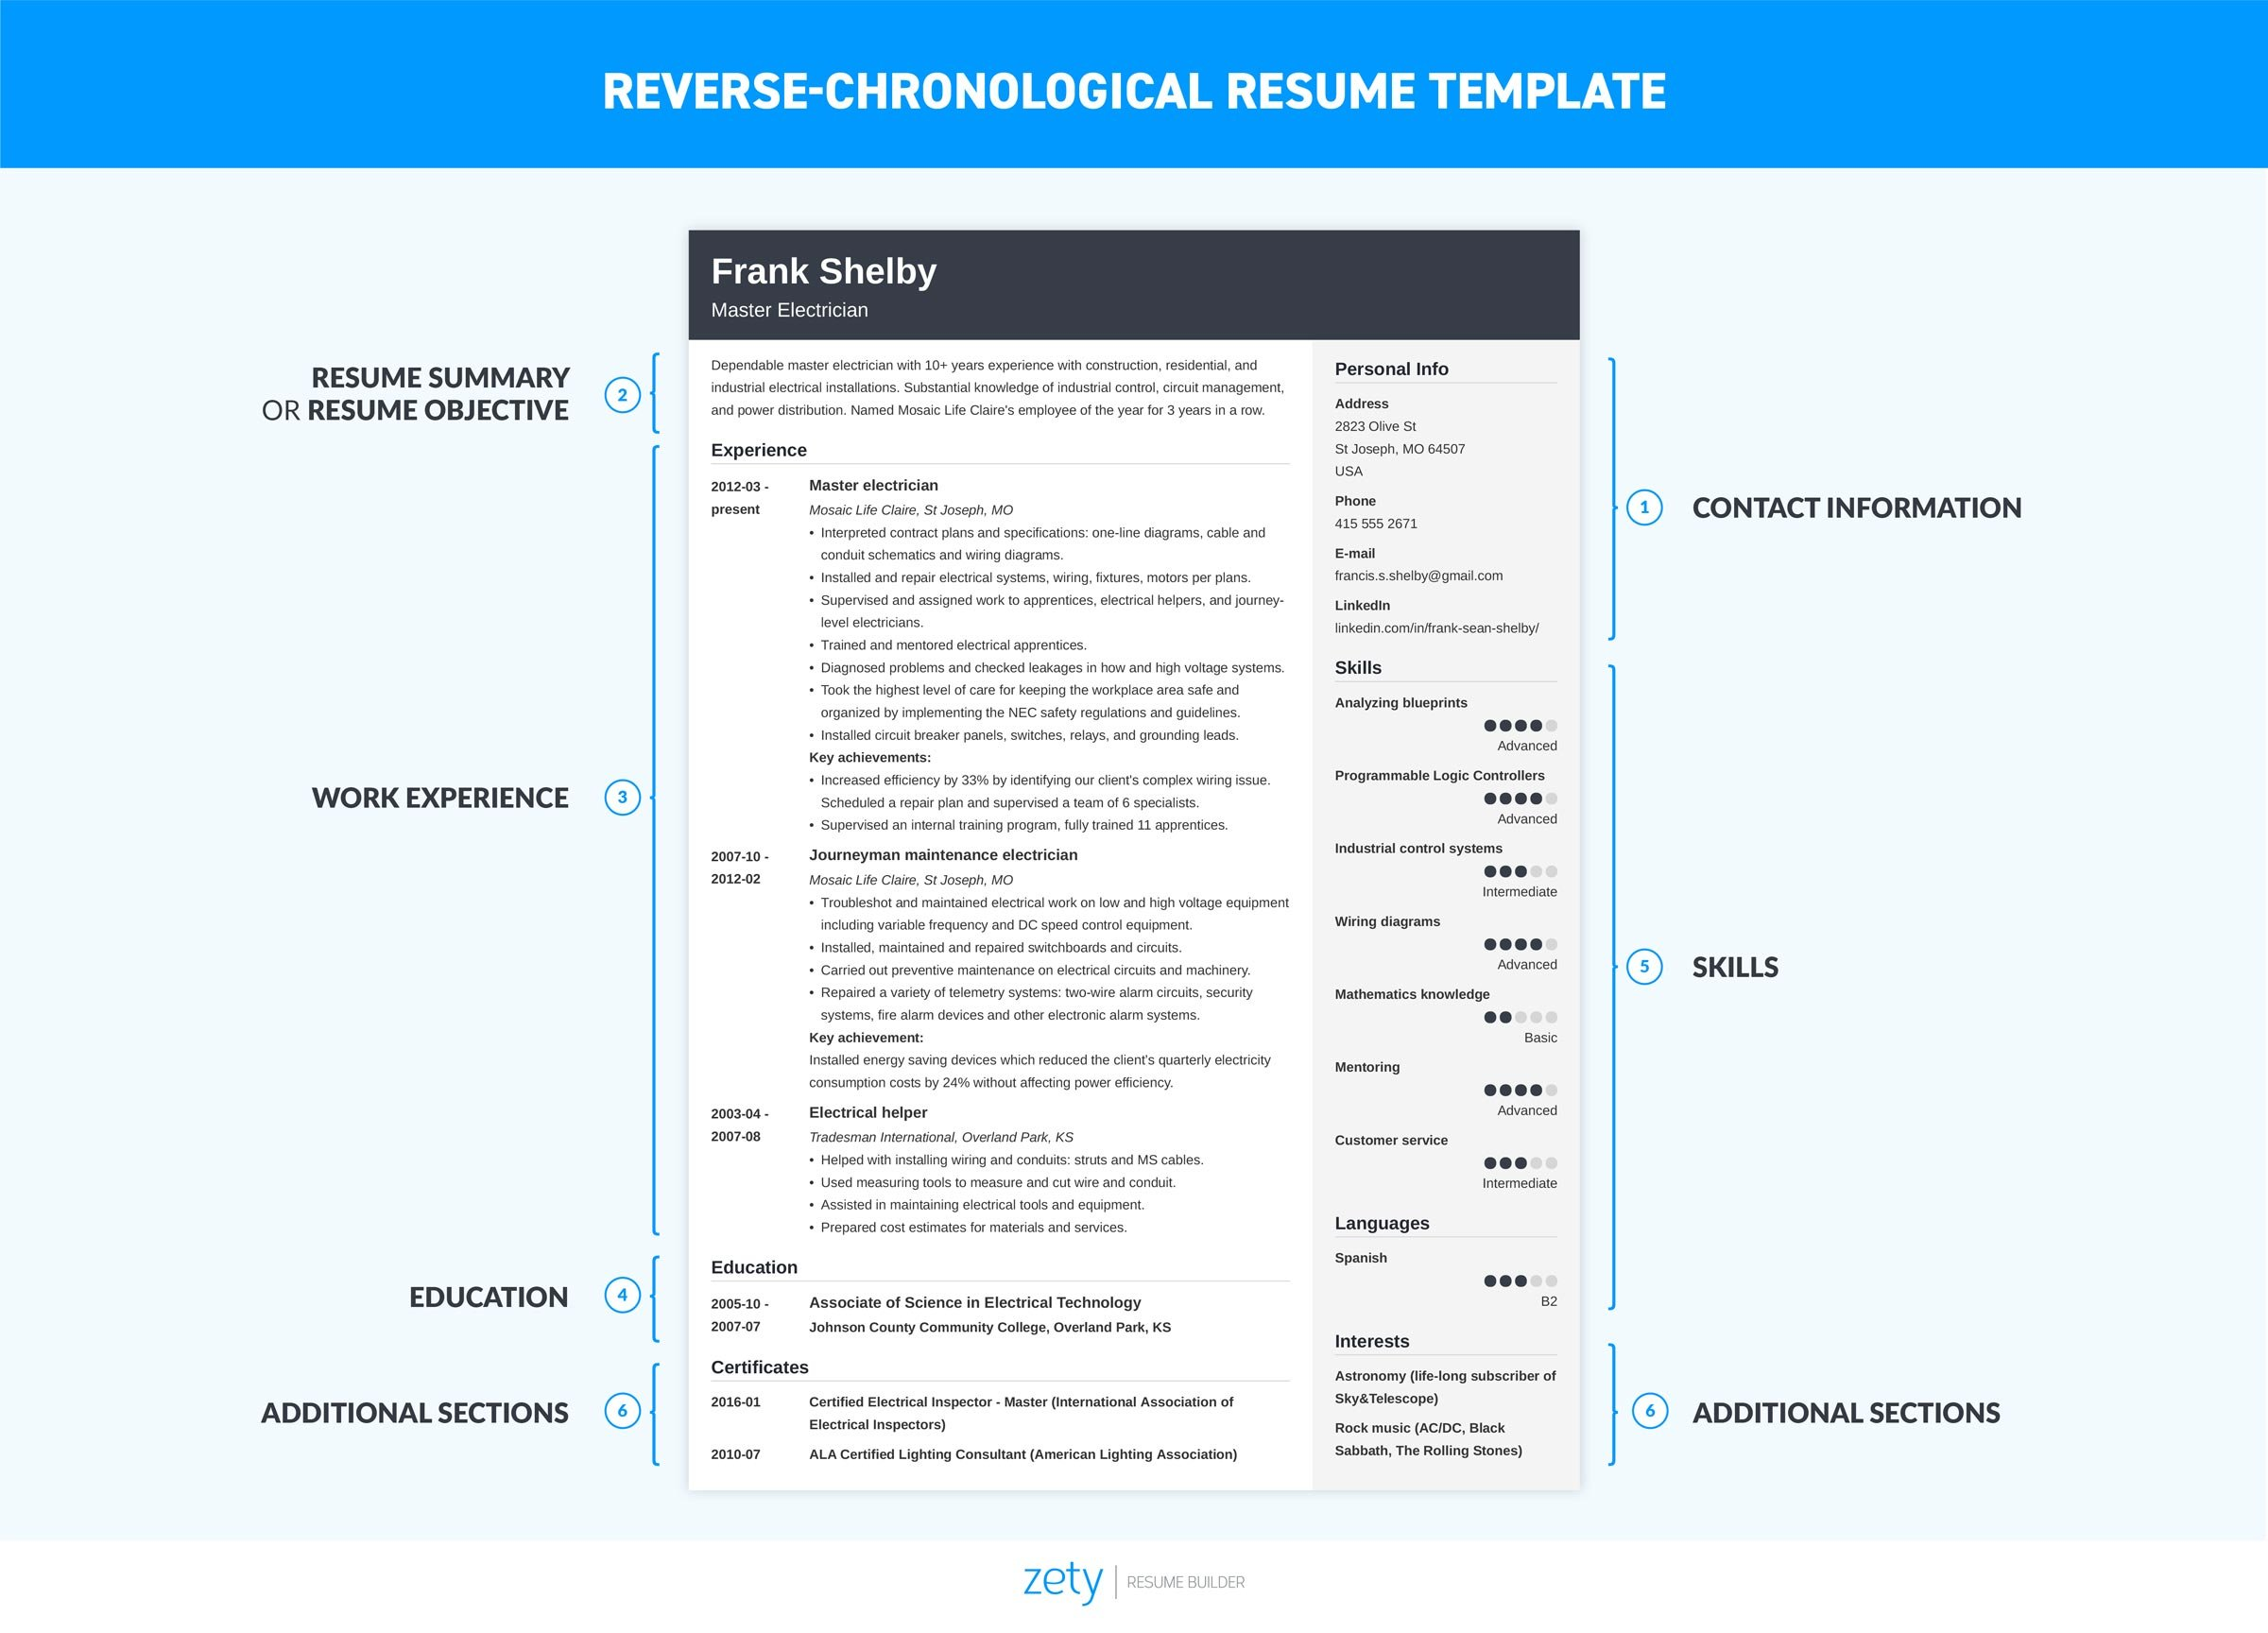 chronological resume template format examples word to write junior network admin school Resume Chronological Resume Template Word